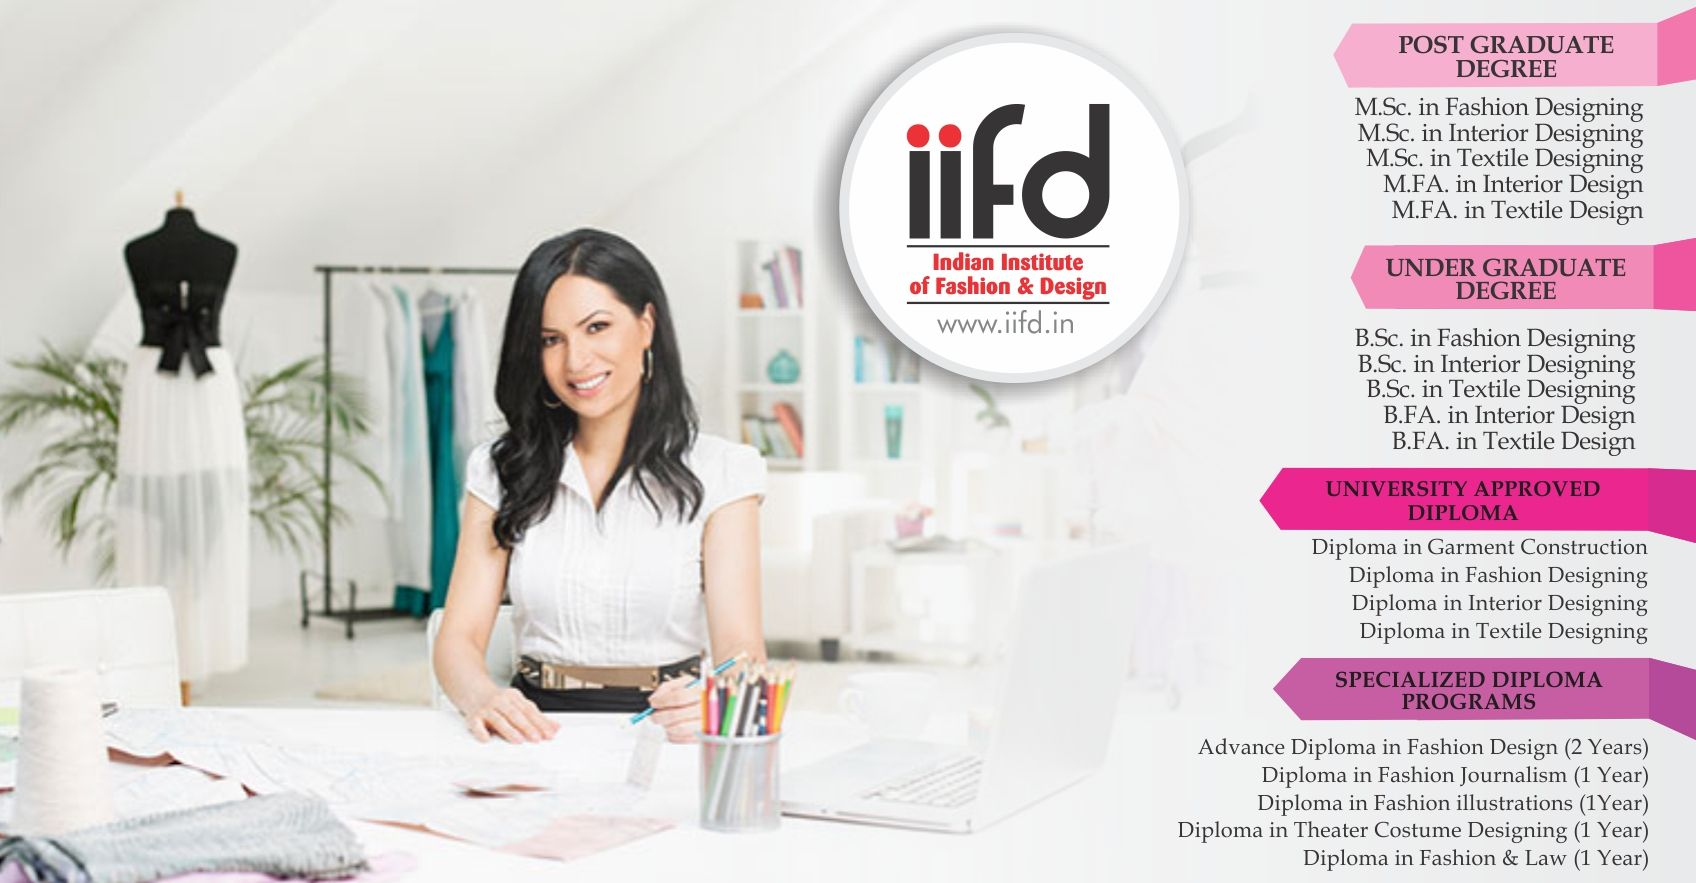 Best Fashion Degree Institute In Chandigarh 100 Placement Call Now 09803329989 Htt Fashion Designing Institute Fashion Designing Course Fashion Degrees